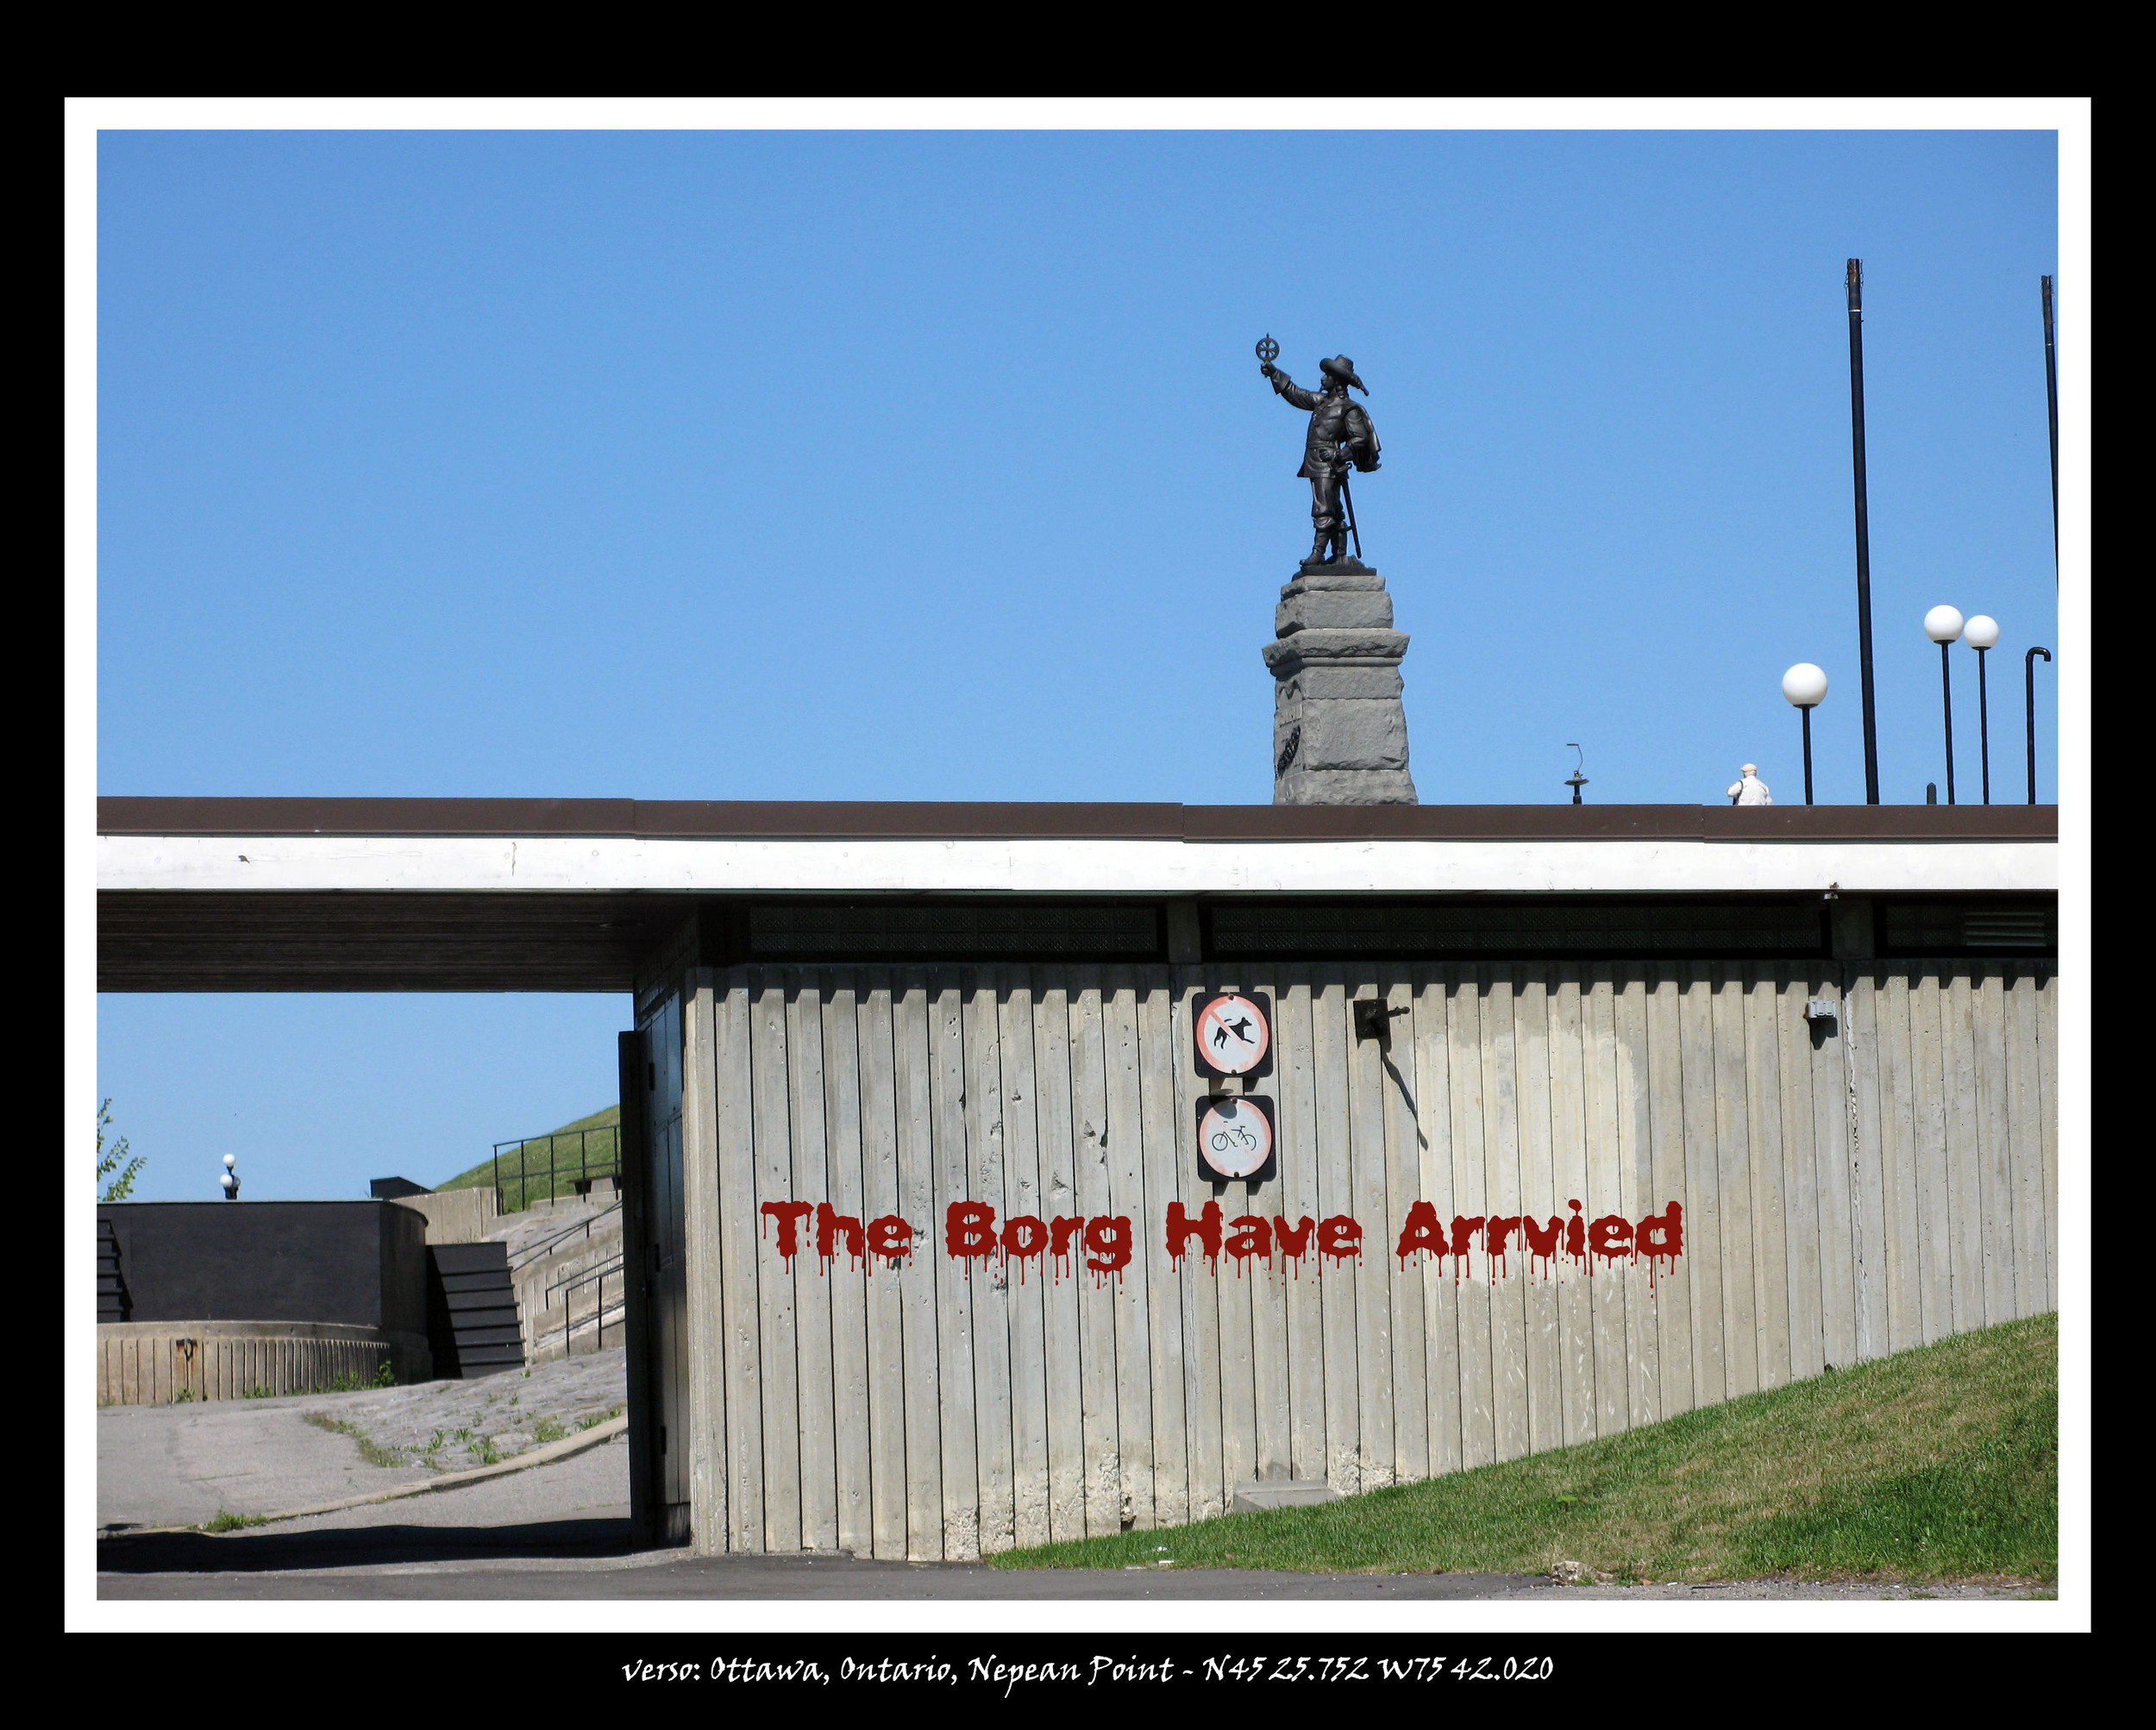 Graffito_Monument_Nepean Point, The Borg have Arrived, drive-by view from parking lot.jpg